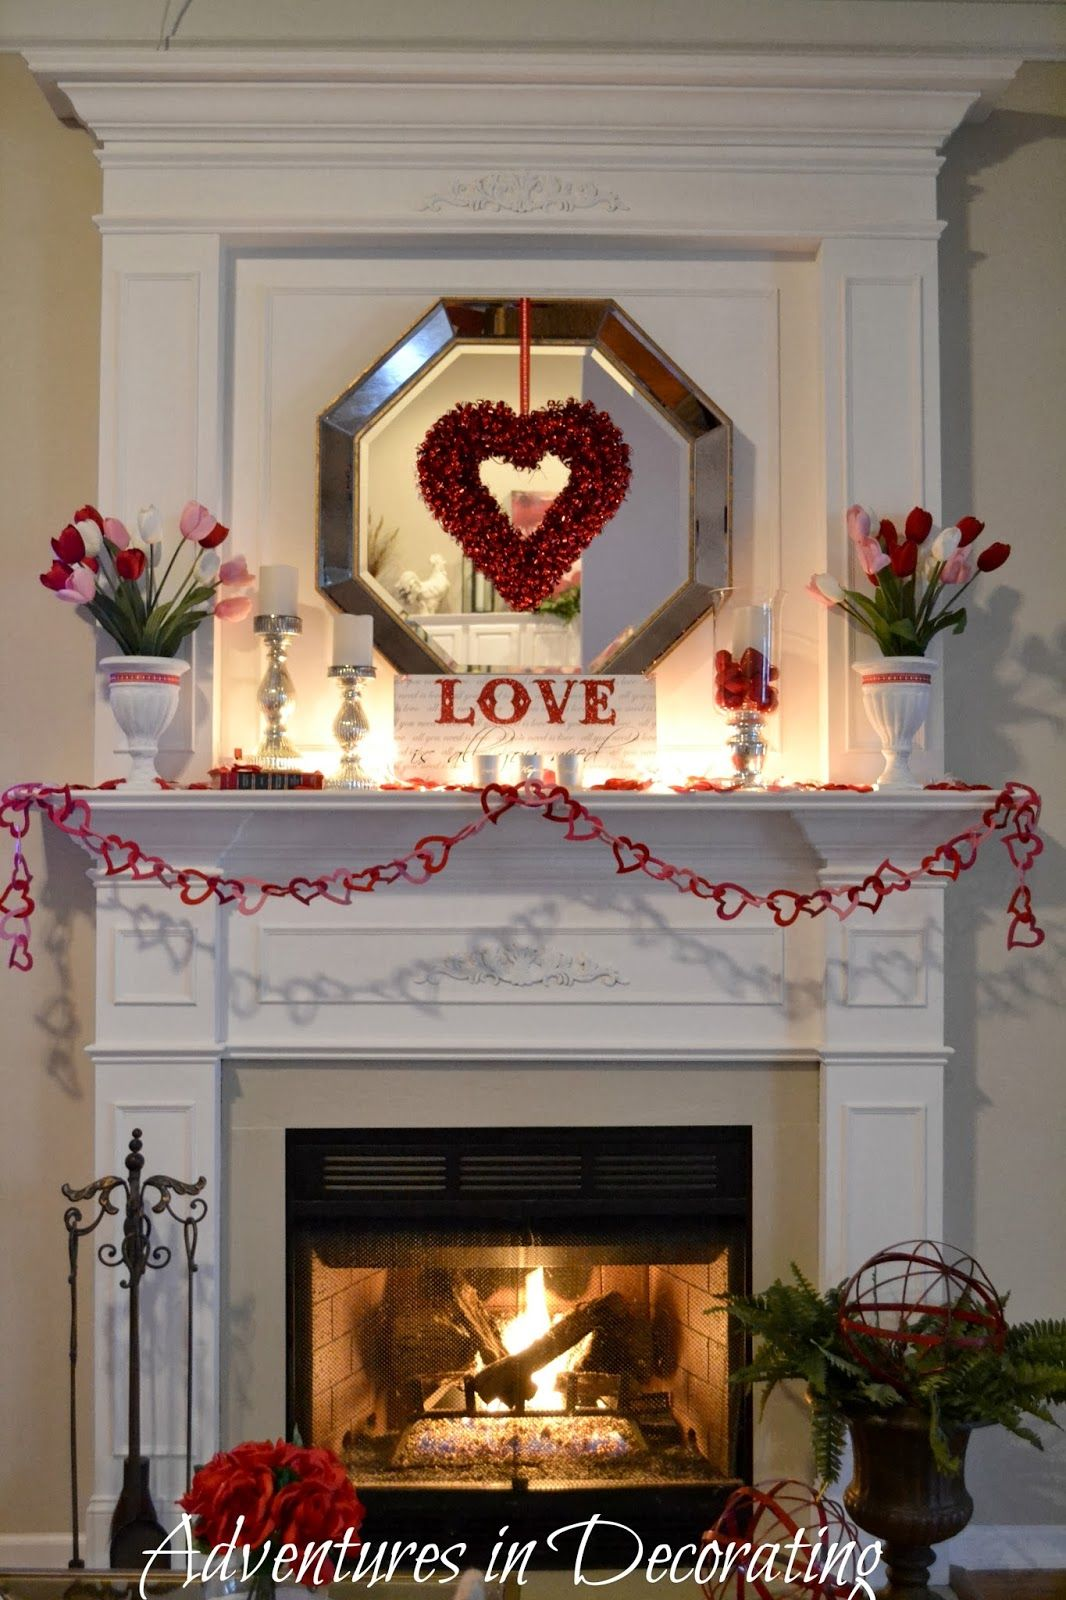 Our Simple Valentine Mantel Amy I know